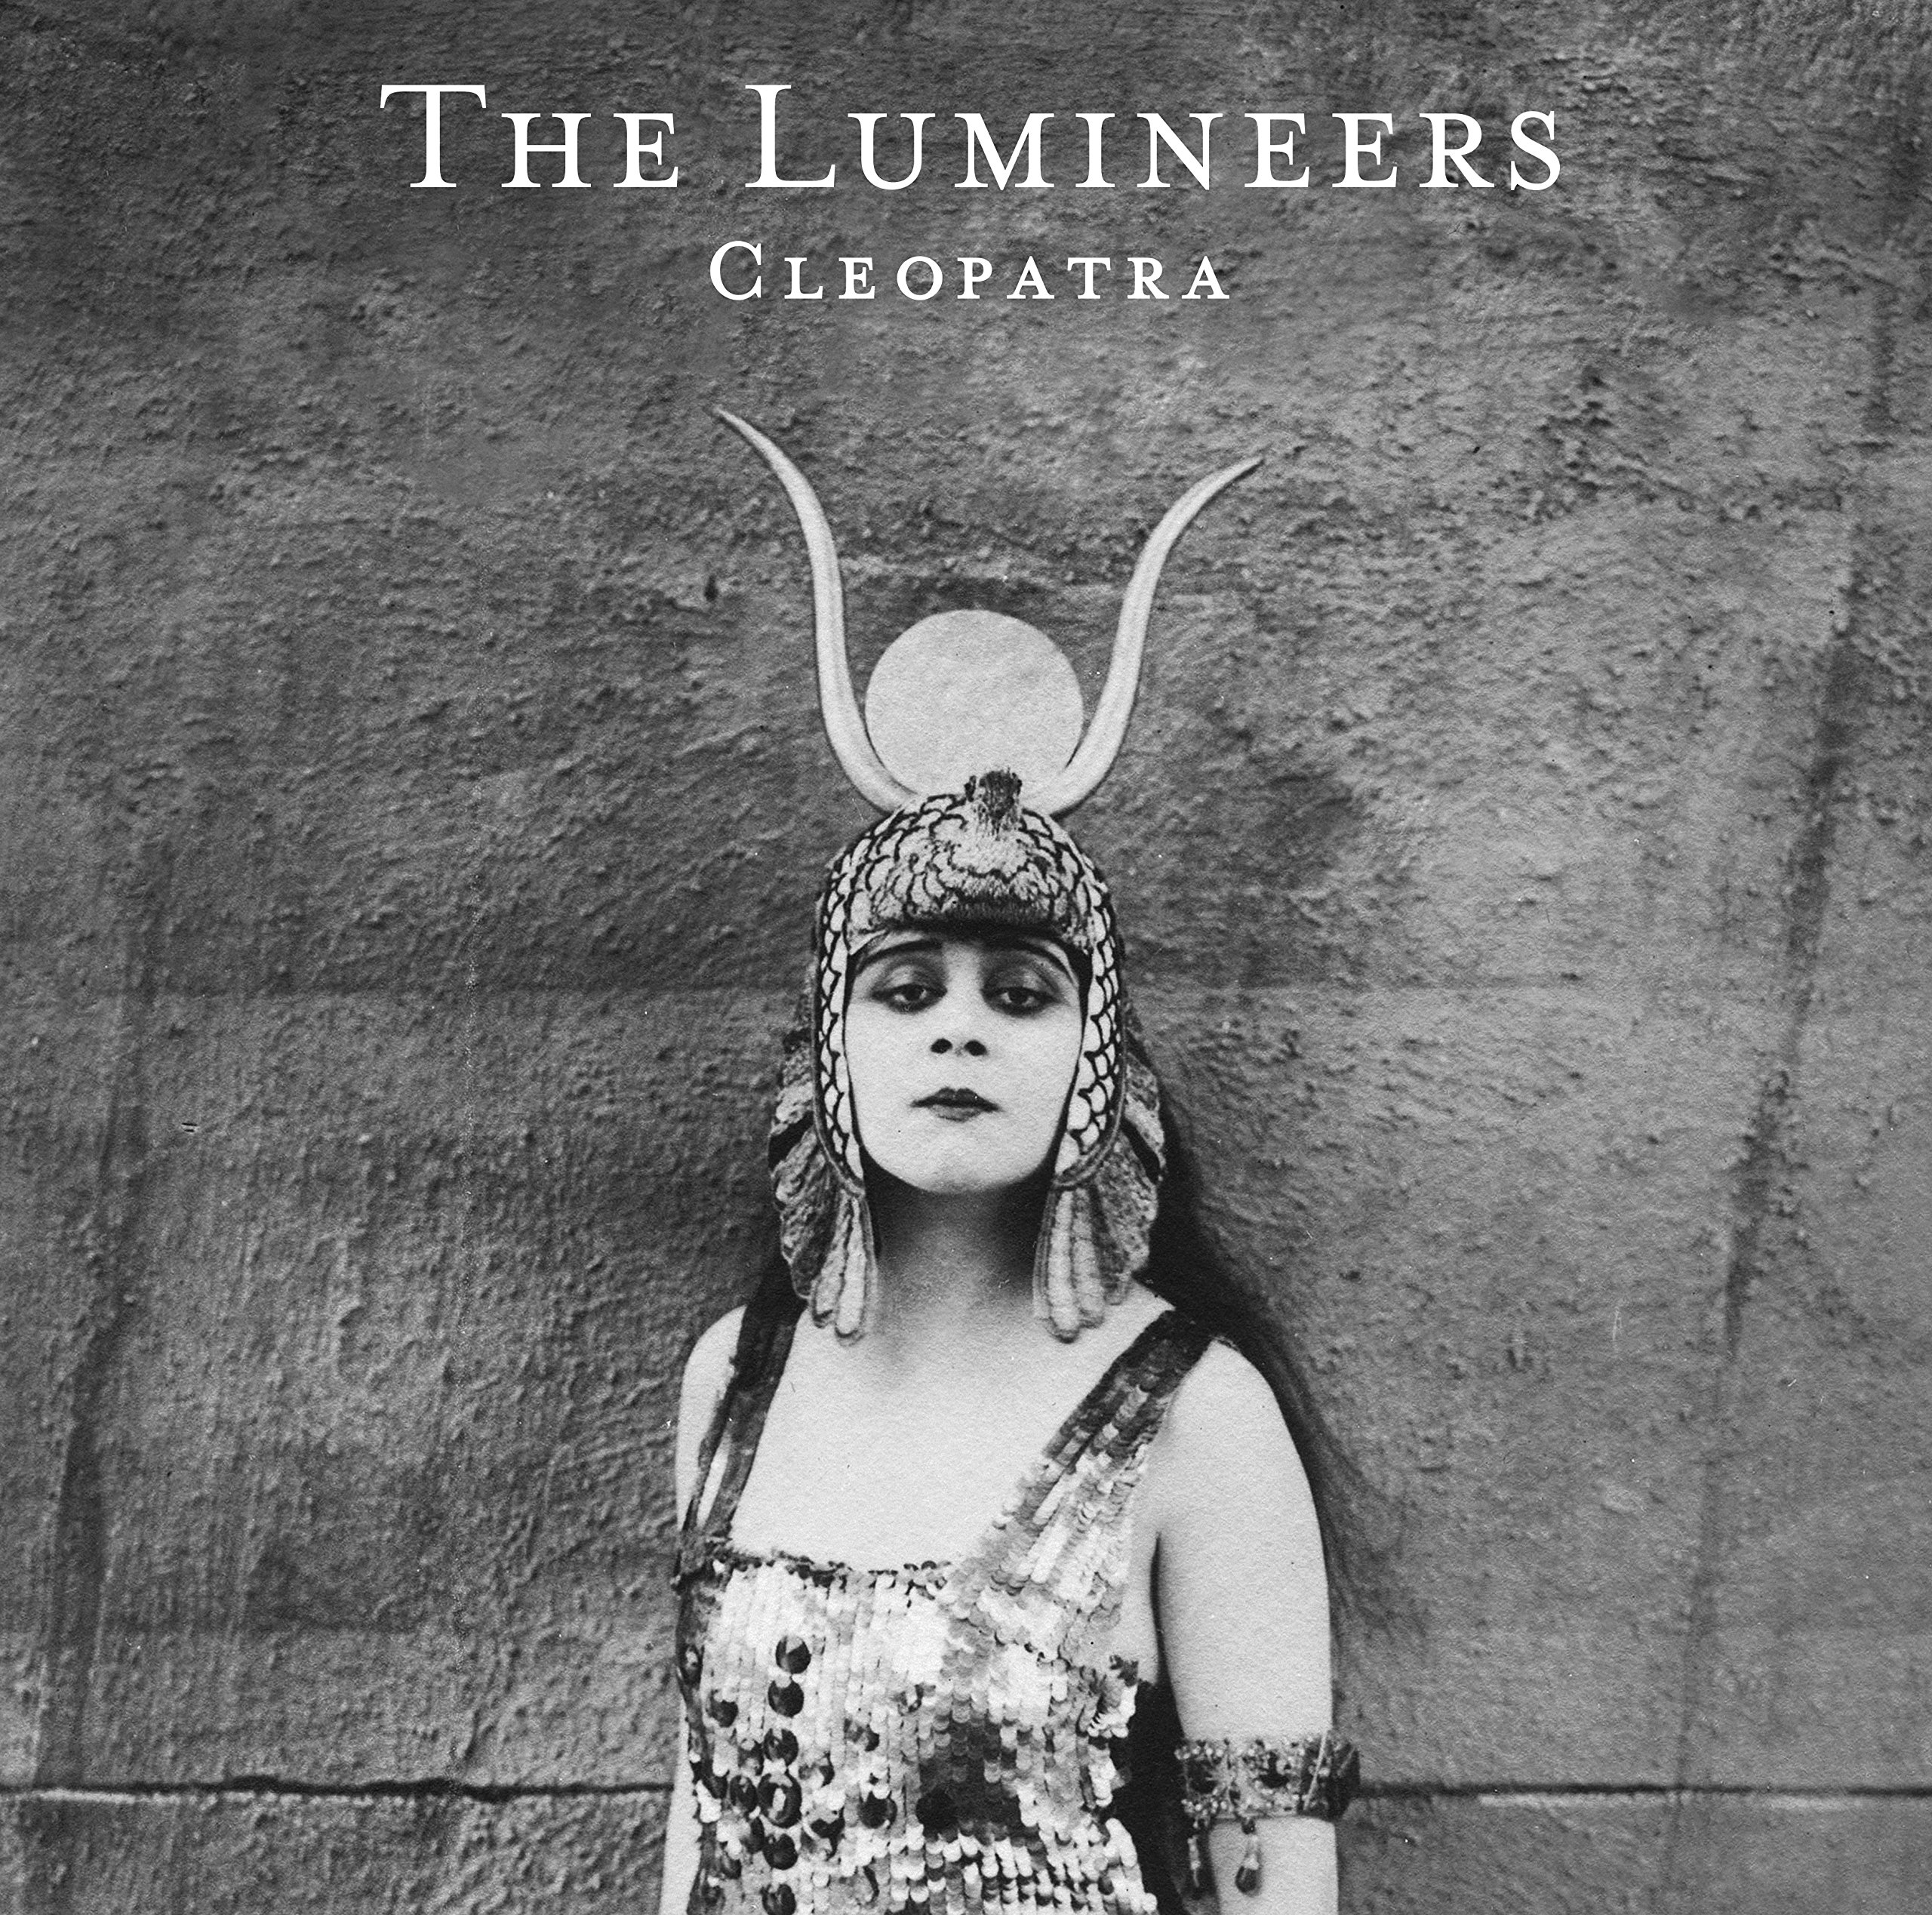 Vinilo : The Lumineers - Cleopatra (Deluxe Edition, 2 Disc)